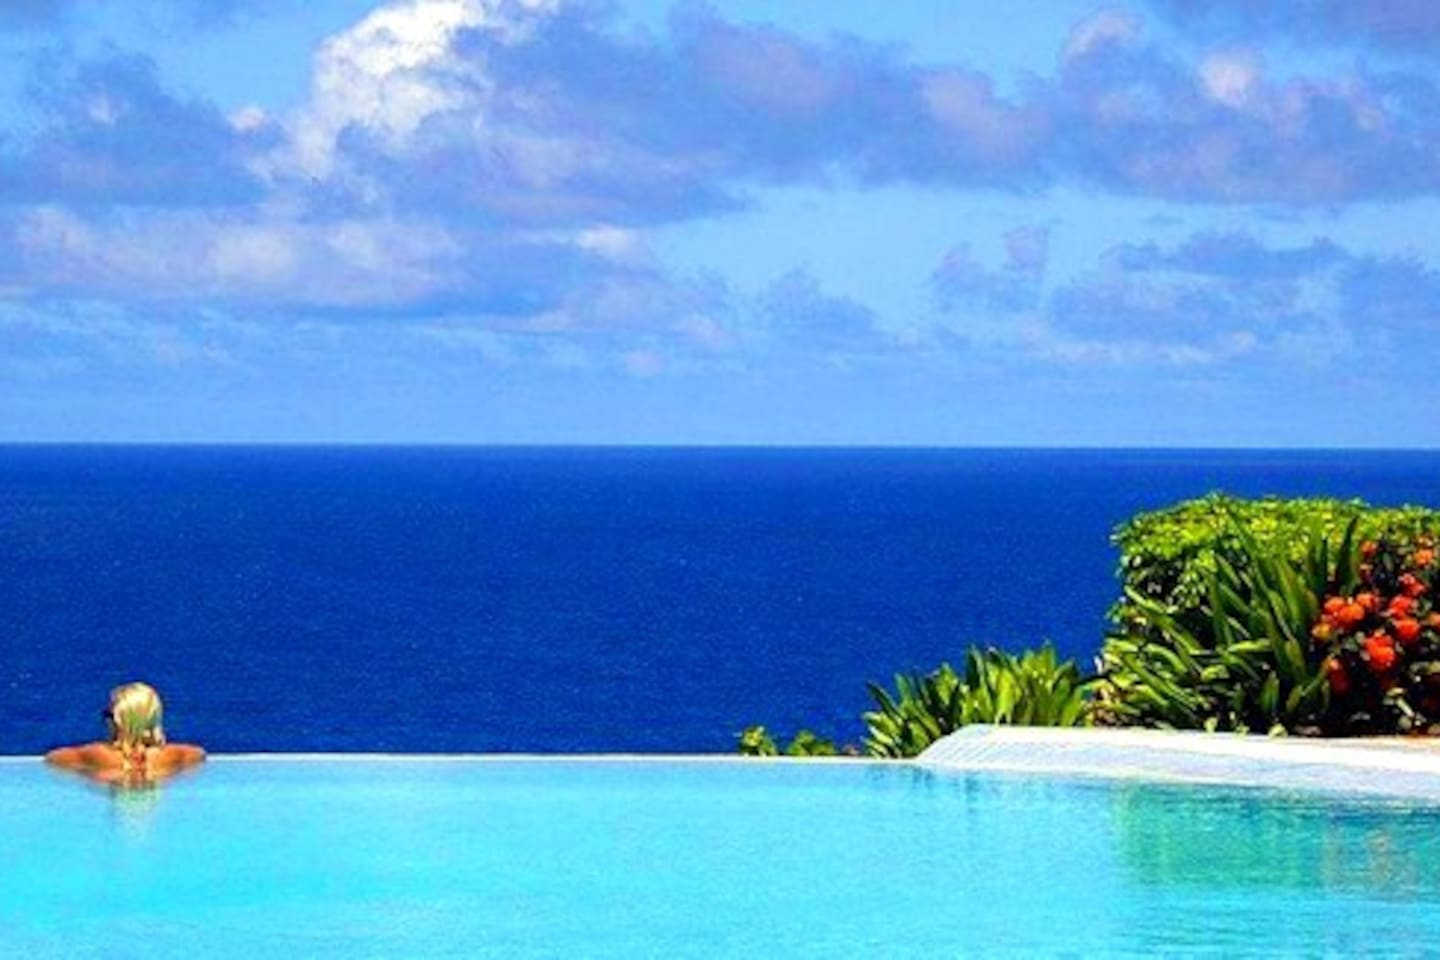 Spectacular Infinity pool overlooking the sea and heated for those balmy Caribbean nights